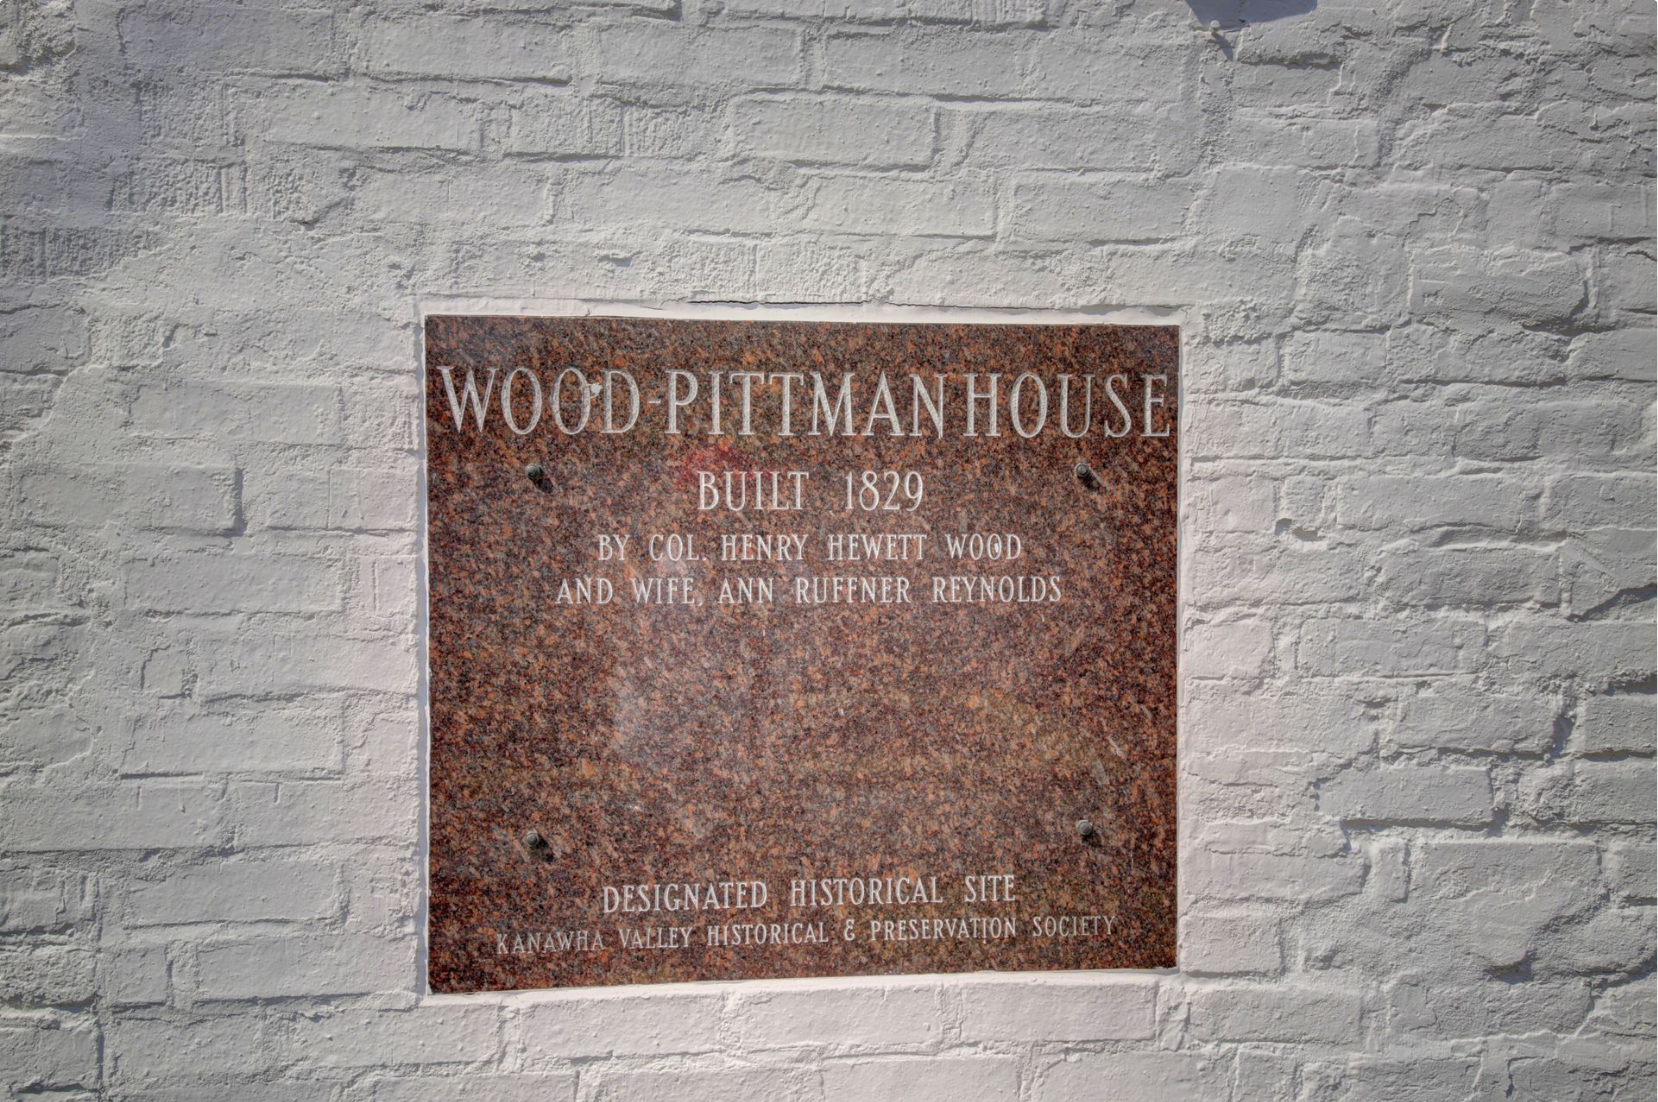 Plaque noting the historical significance of the house